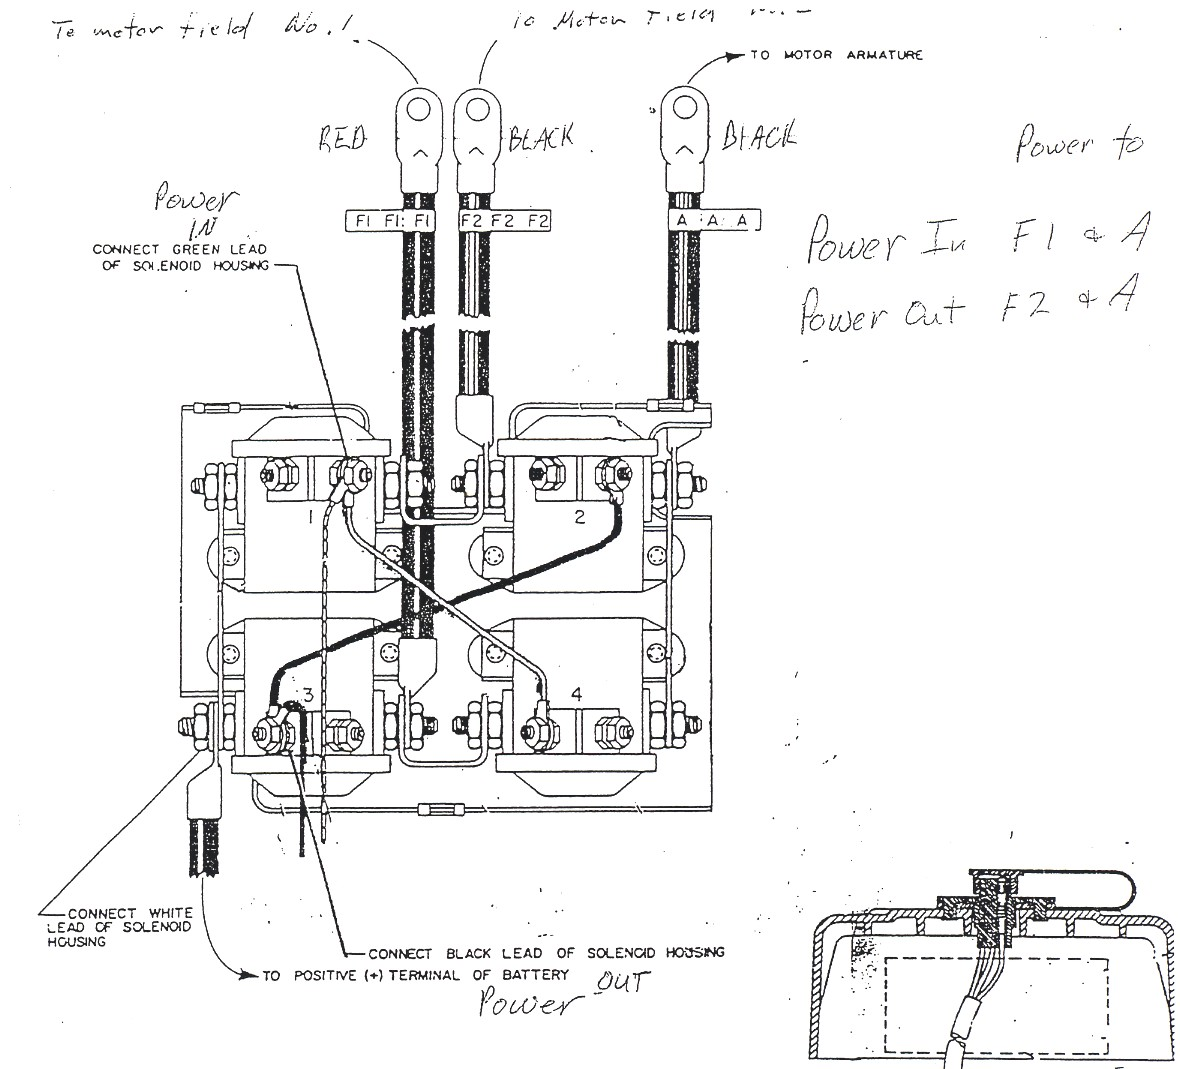 80 untitled_0689e0d674eea10f43090f1fea7c785fc8250009 need help wiring winch if someone could look over my diagram winch contactor wiring diagram at fashall.co